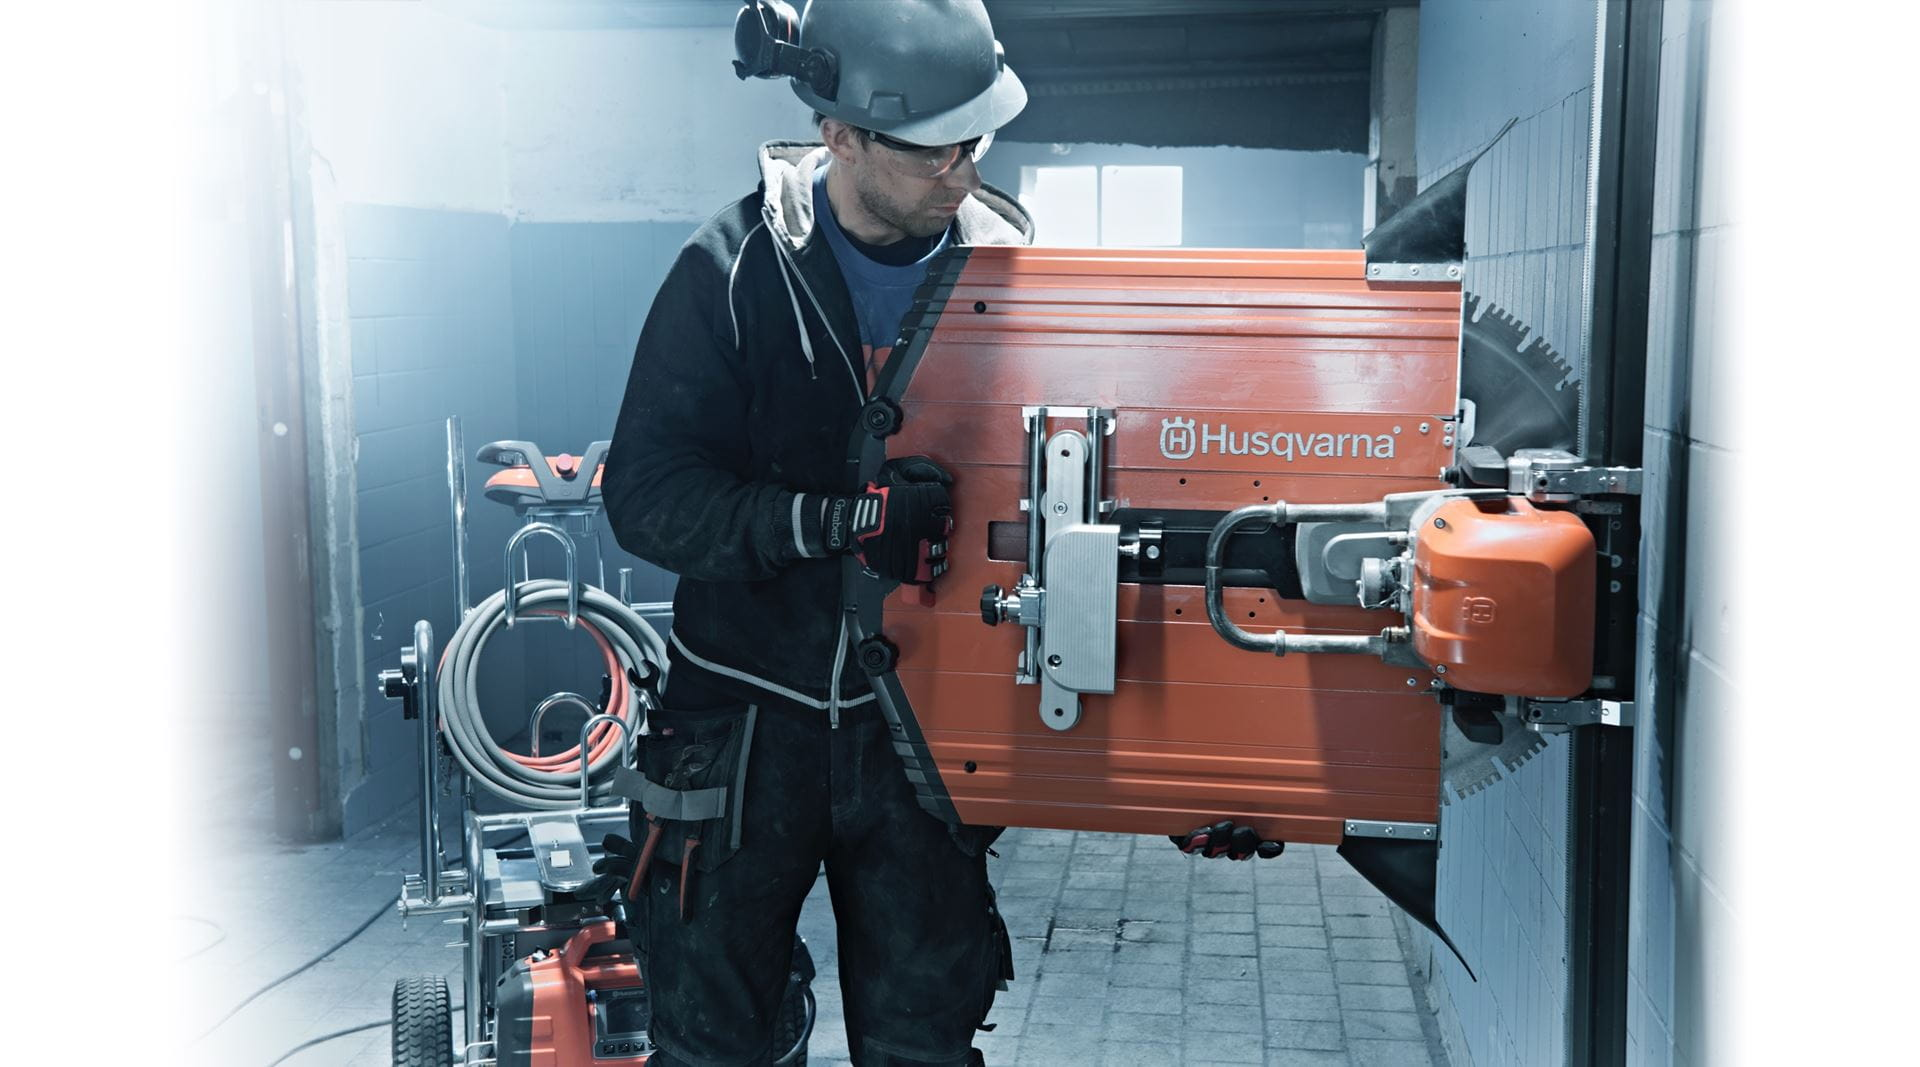 The smart transport carriage and easy setup adds to the high efficiency of Husqvarna WS 220 wall sawing system.